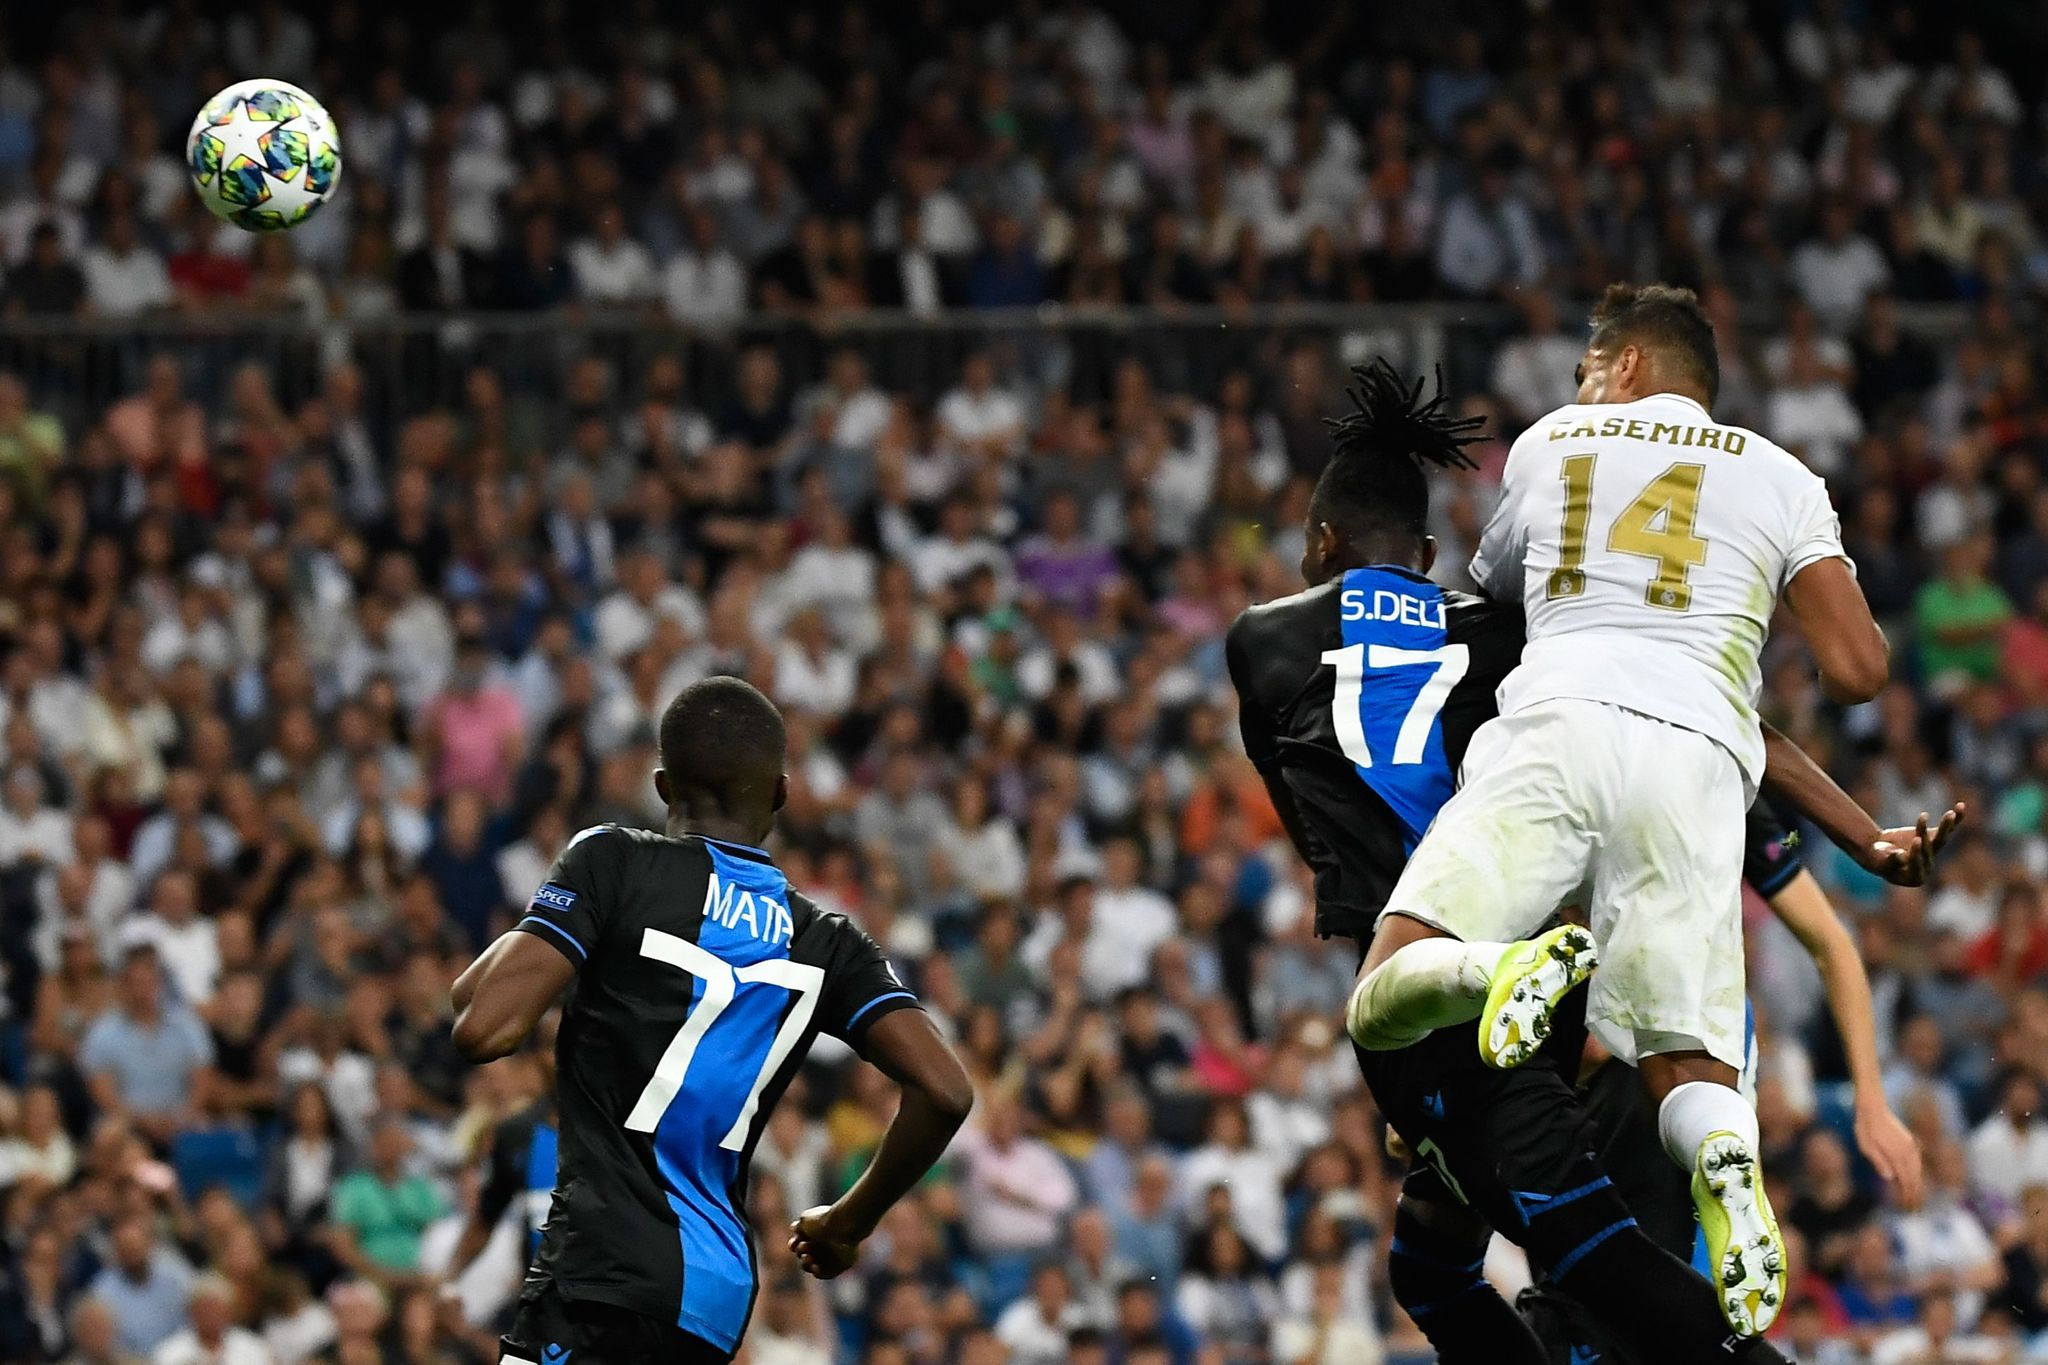 TOPSHOT - Real Madrids Brazilian midfielder <HIT>Casemiro</HIT> (R) scores a goal during the UEFA Champions league Group A football match between Real Madrid and Club Brugge at the Santiago Bernabeu stadium in Madrid on October 1, 2019. (Photo by PIERRE-PHILIPPE MARCOU / AFP)